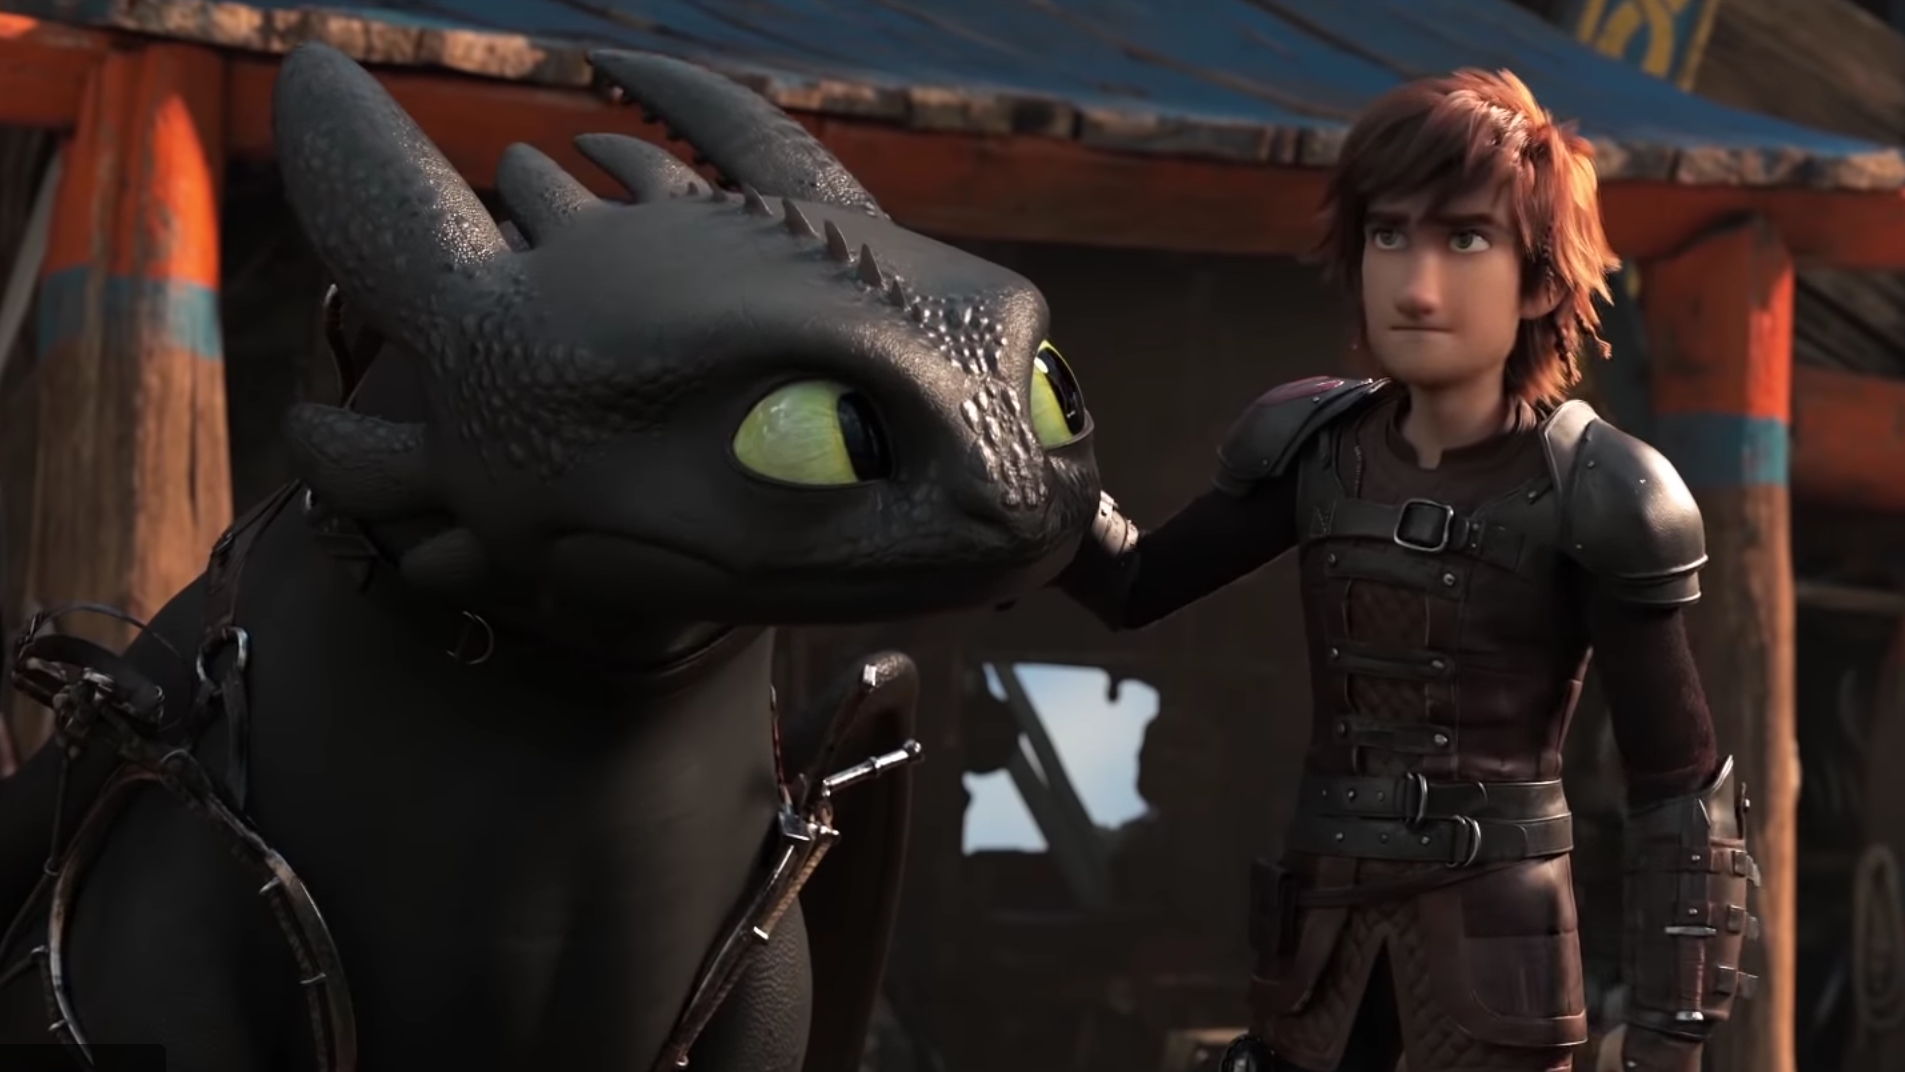 The Latest How To Train Your Dragon 3 Trailer Prepares Us For A Hiccup Without Toothless